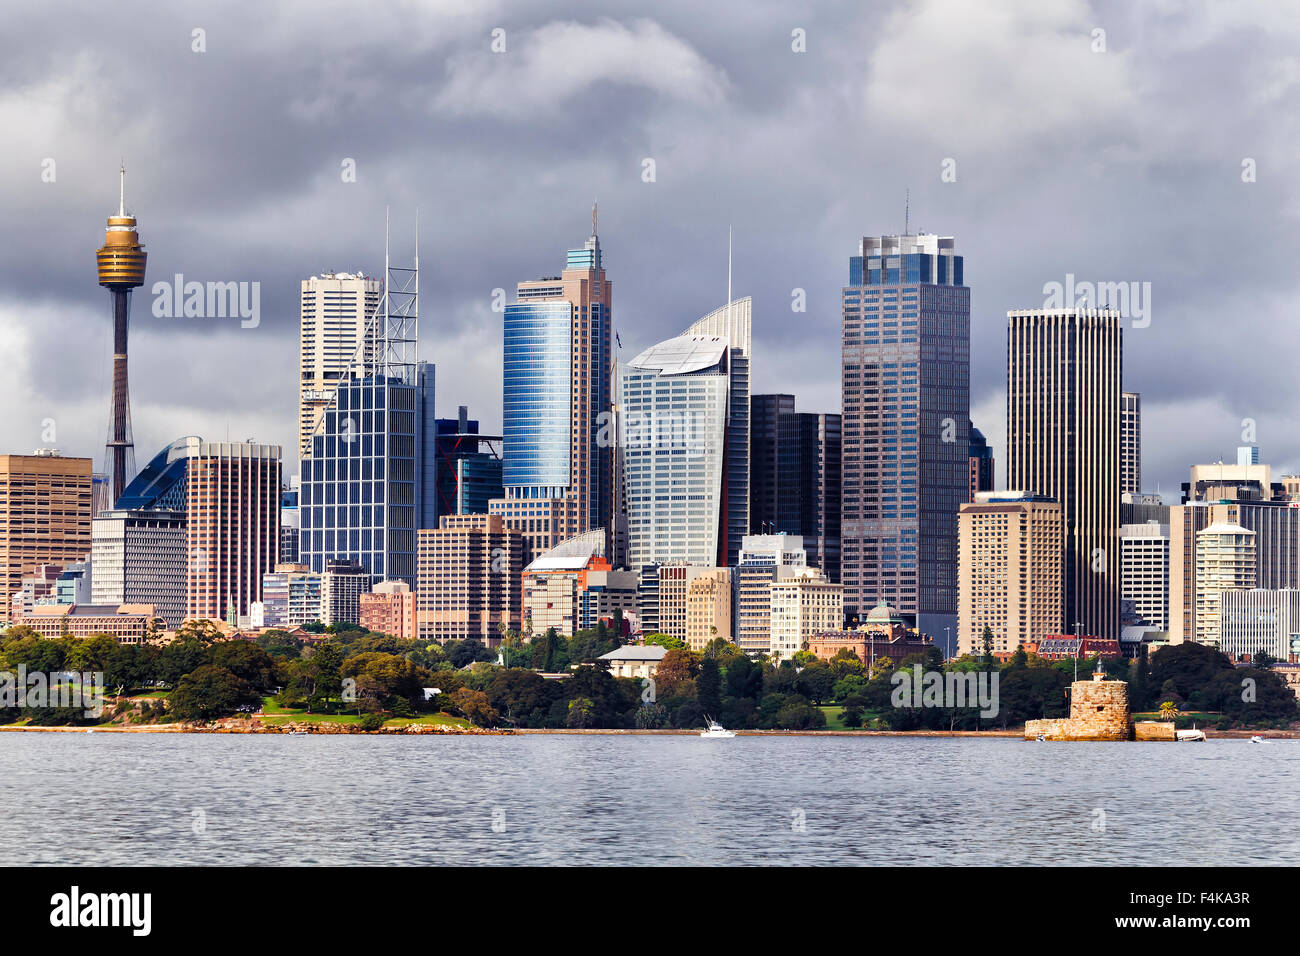 Australian Sydney landmark - city CBD high rises and towers forming megapolis cityscape summer day from harbour - Stock Image